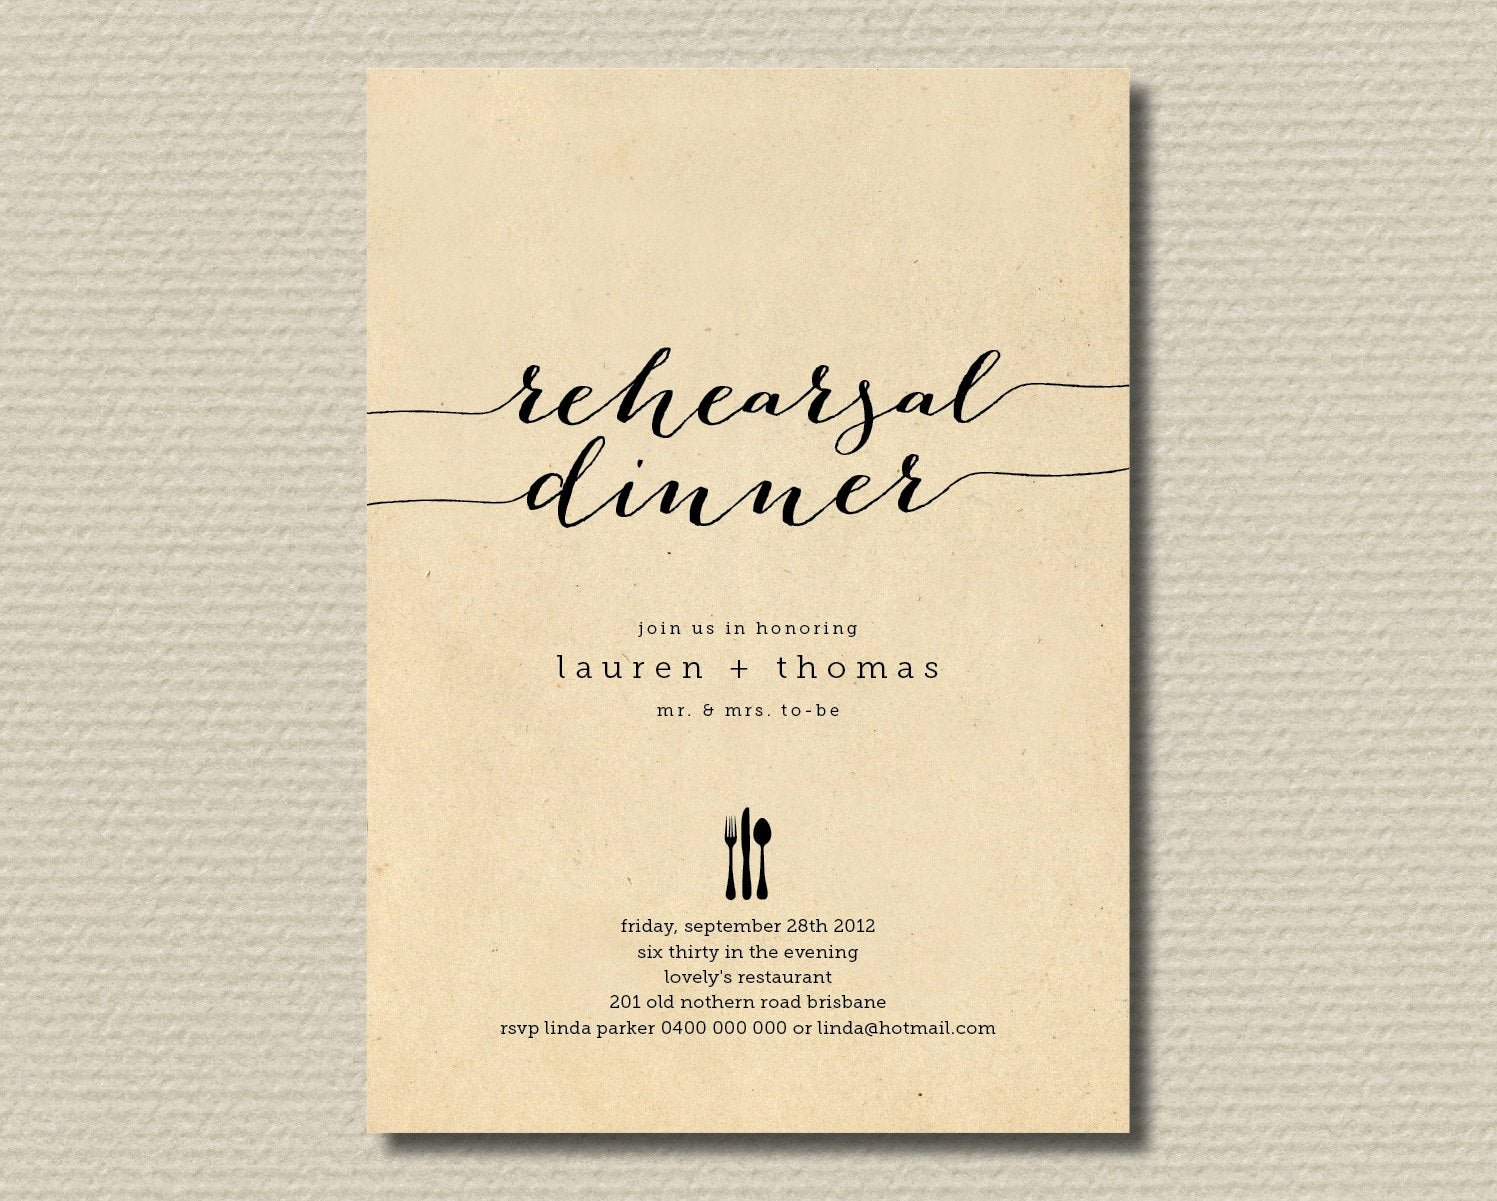 Wedding Rehearsal Dinner Invitation Template New Printable Wedding Rehearsal Dinner Invitation by